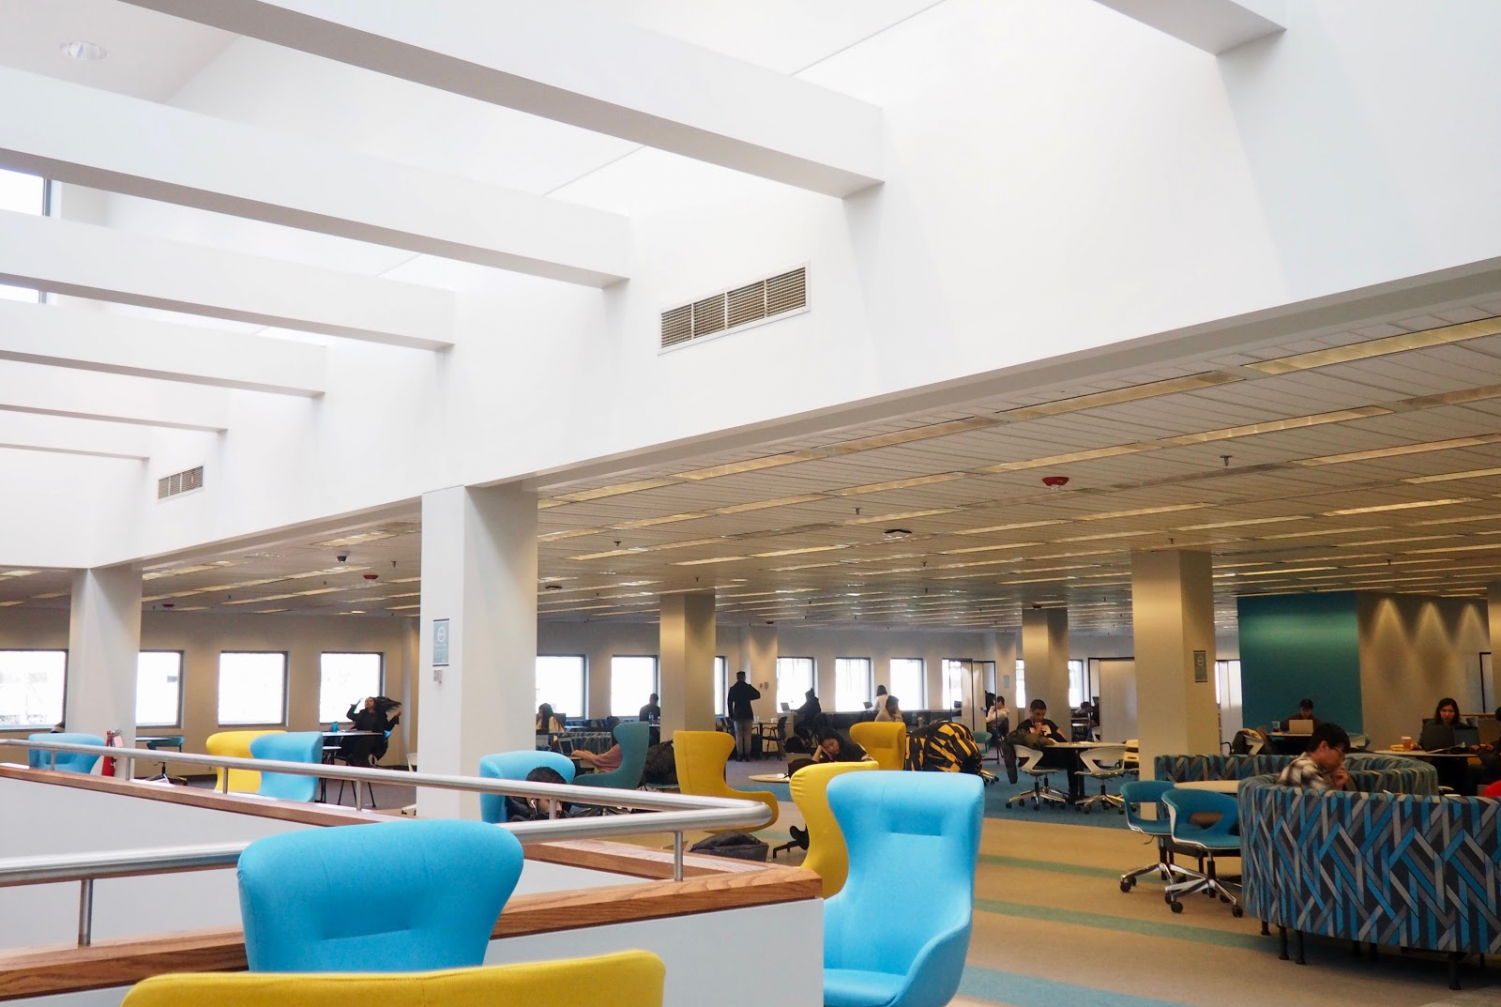 The fourth floor of Snell Library underwent renovations resulting in new furniture and more.